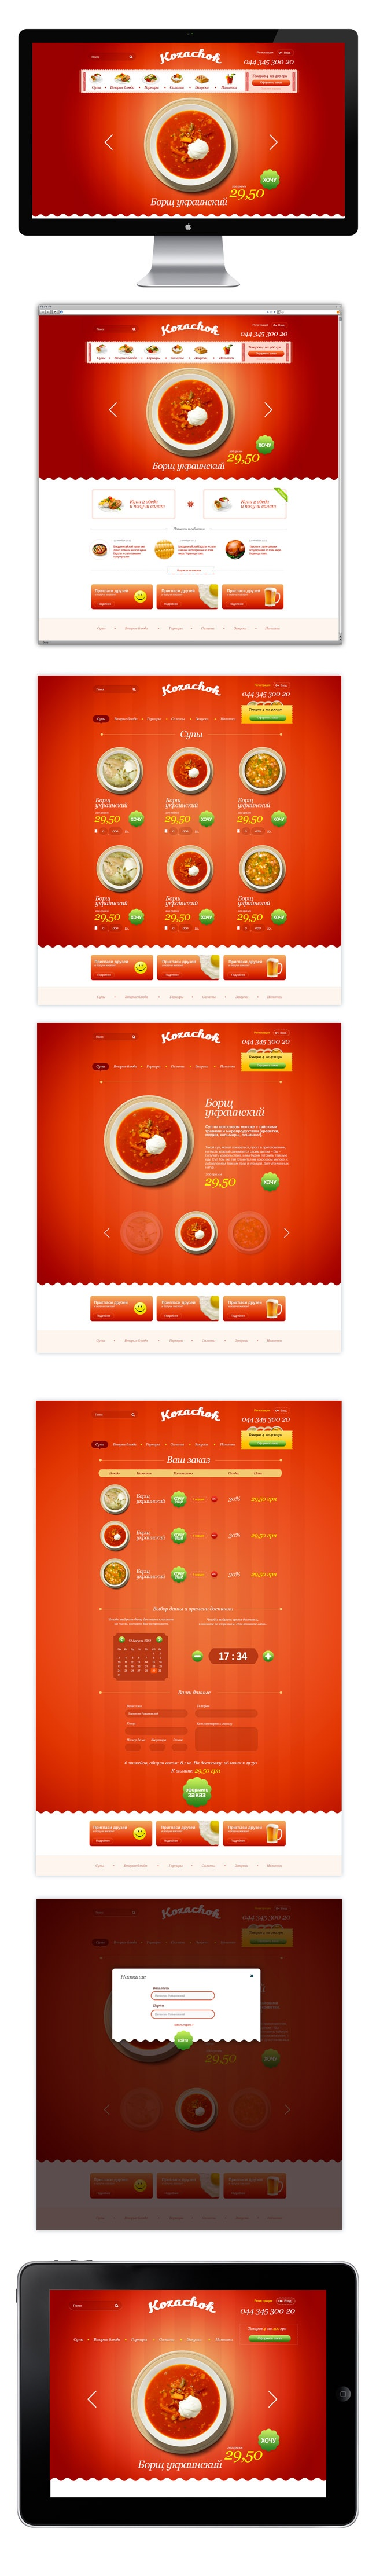 Kozachok online food shop by Apostol Nikolay, via Behance